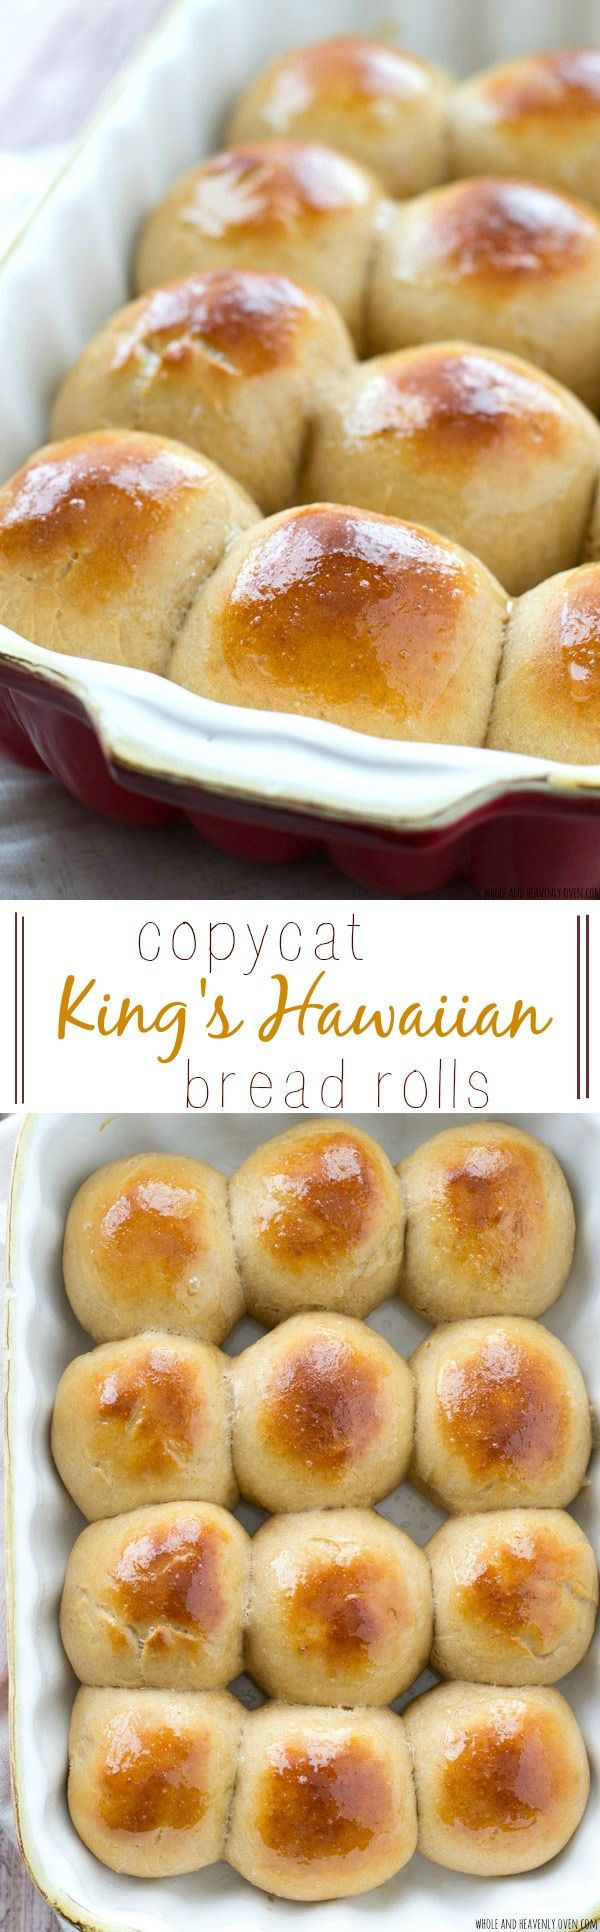 Love King's Hawaiian bread rolls? Once you try them homemade, you'll never go back to storebought again. So easy to make and so soft inside you won't be able to stop eating them! @WholeHeavenly